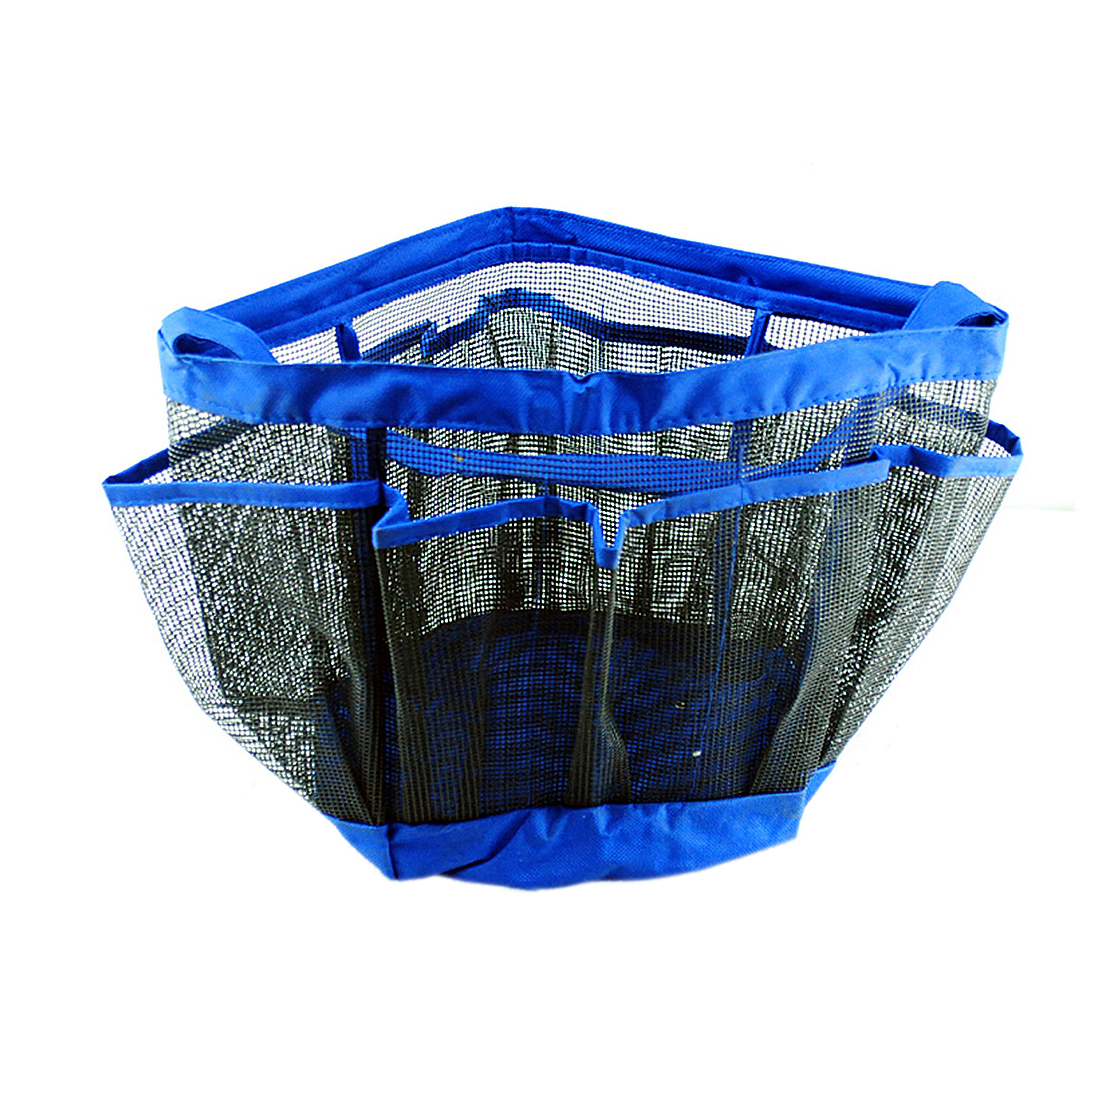 Hanging Blue Multifunctional Grid Organizer Wash Bag Mesh Makeup Storage Case 5ae019a82a00e479493621ab